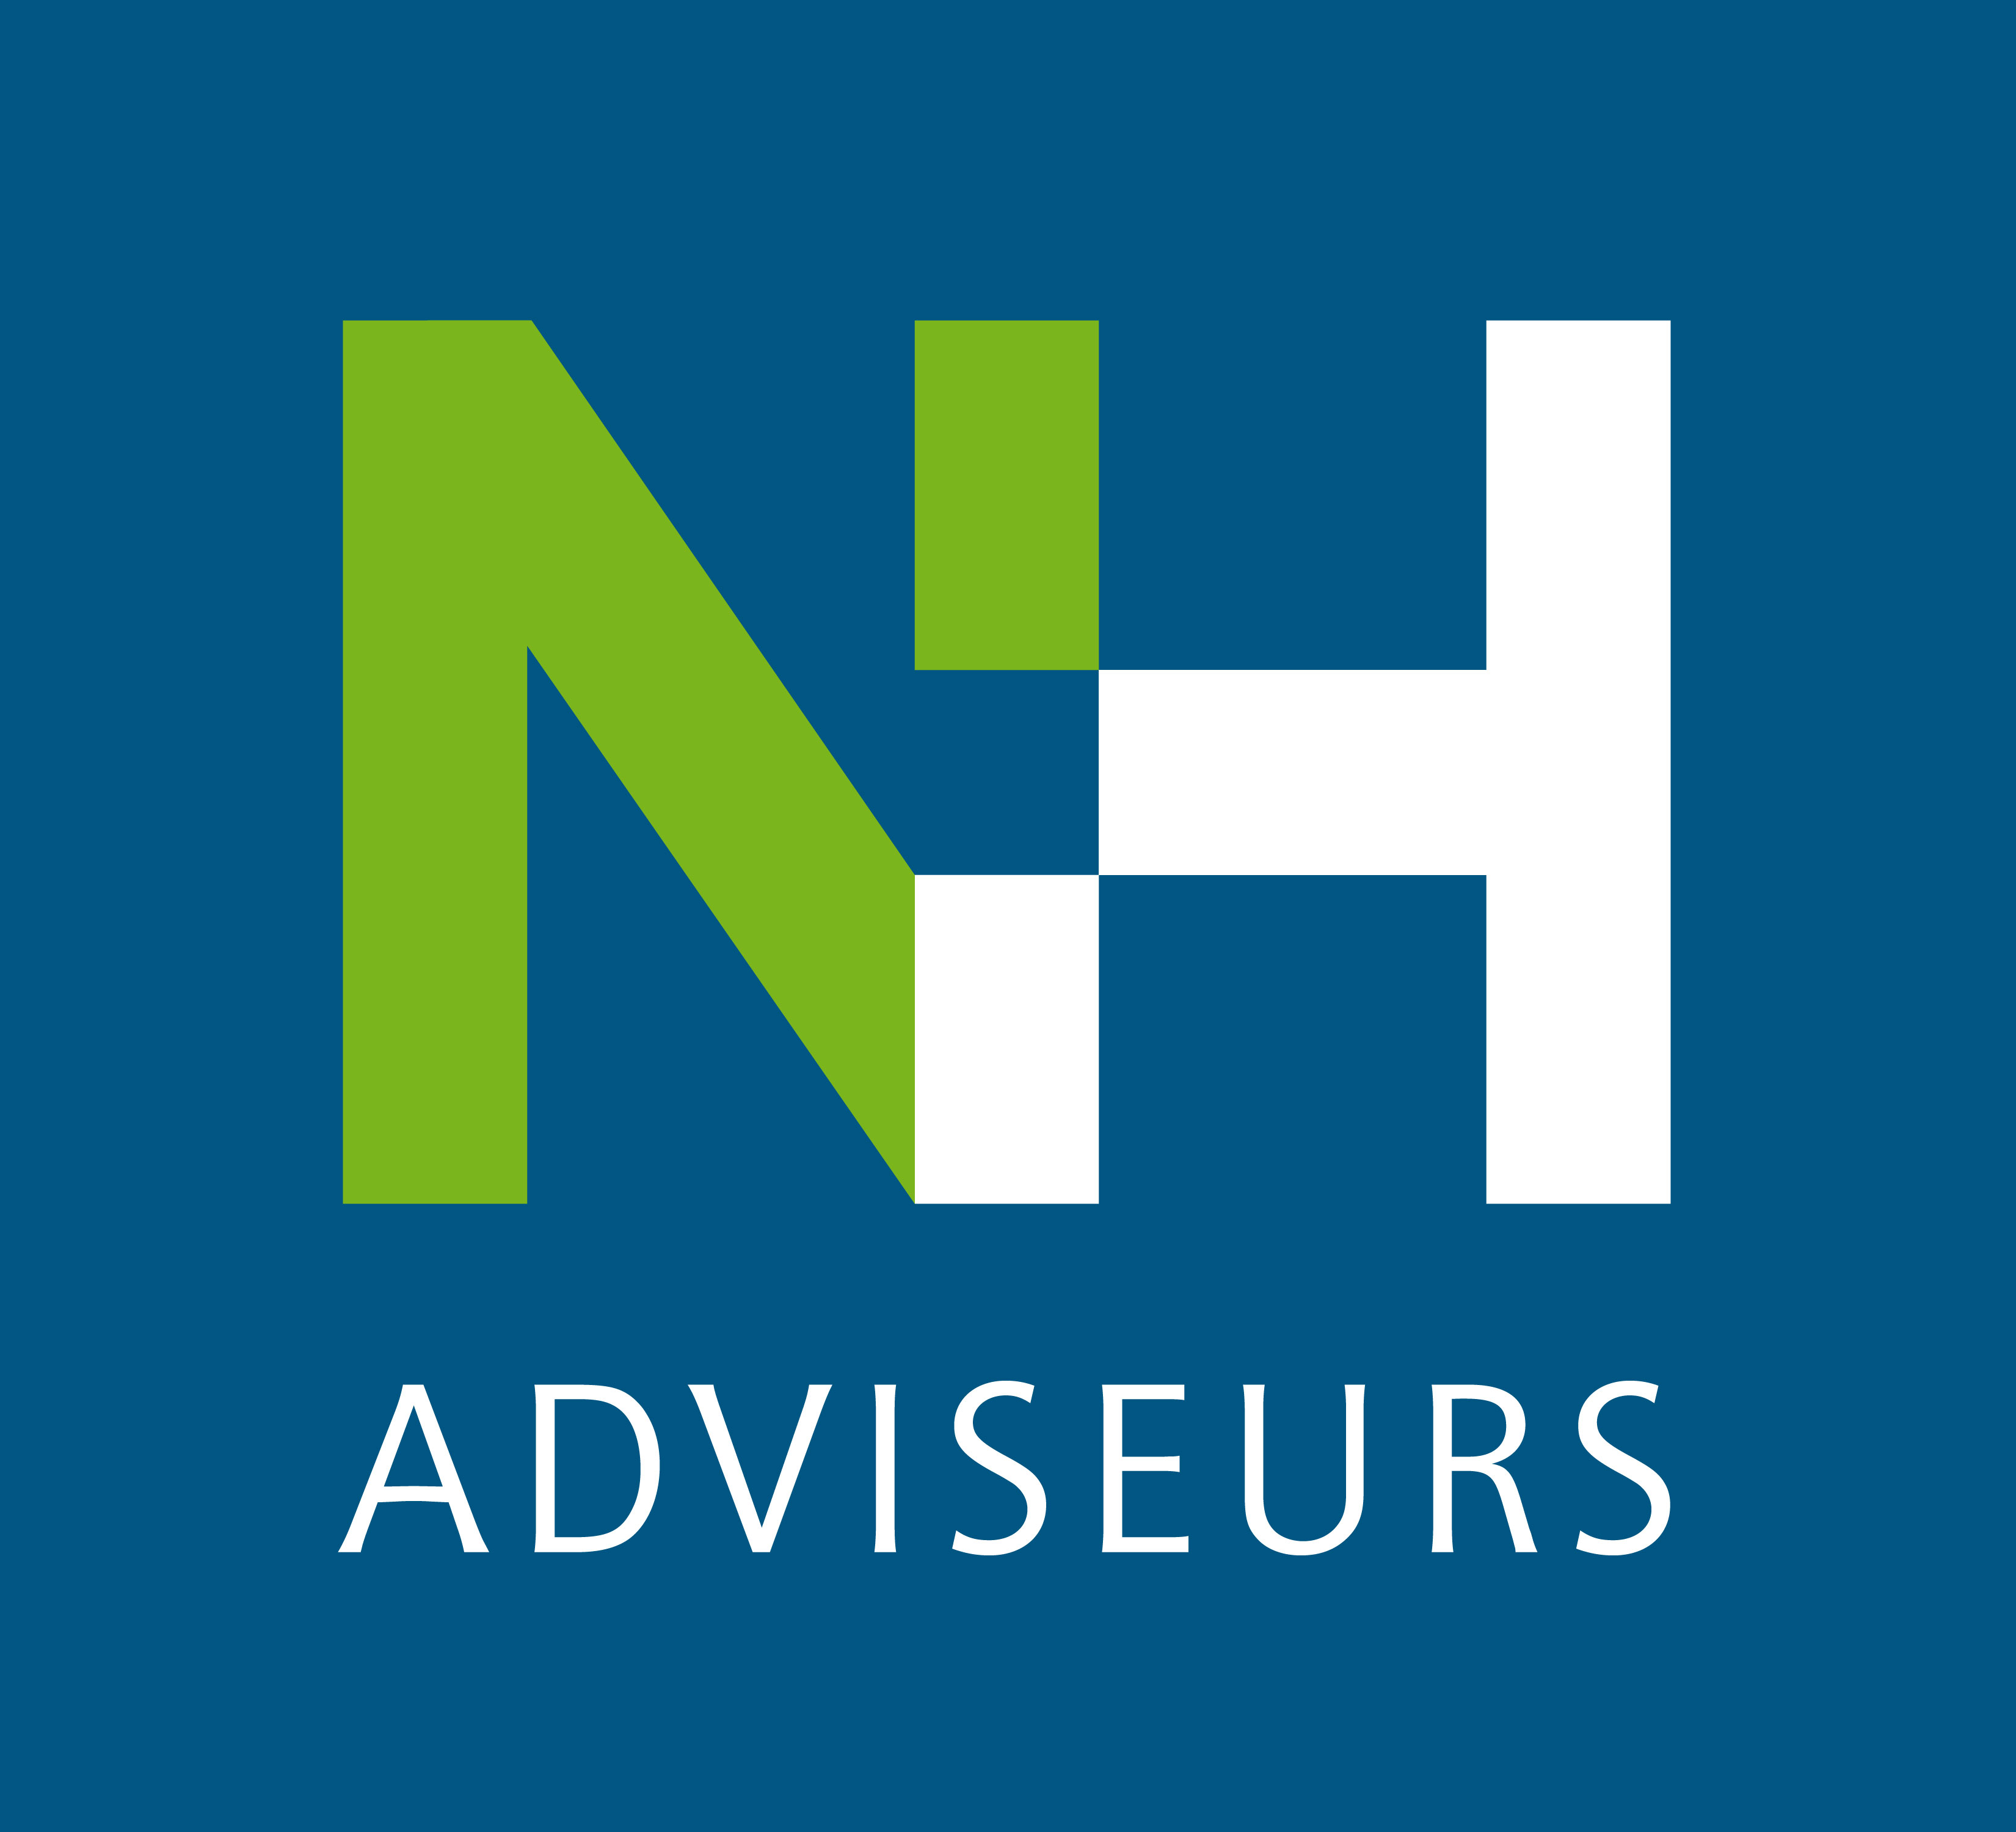 Preferred supplier NH Adviseurs